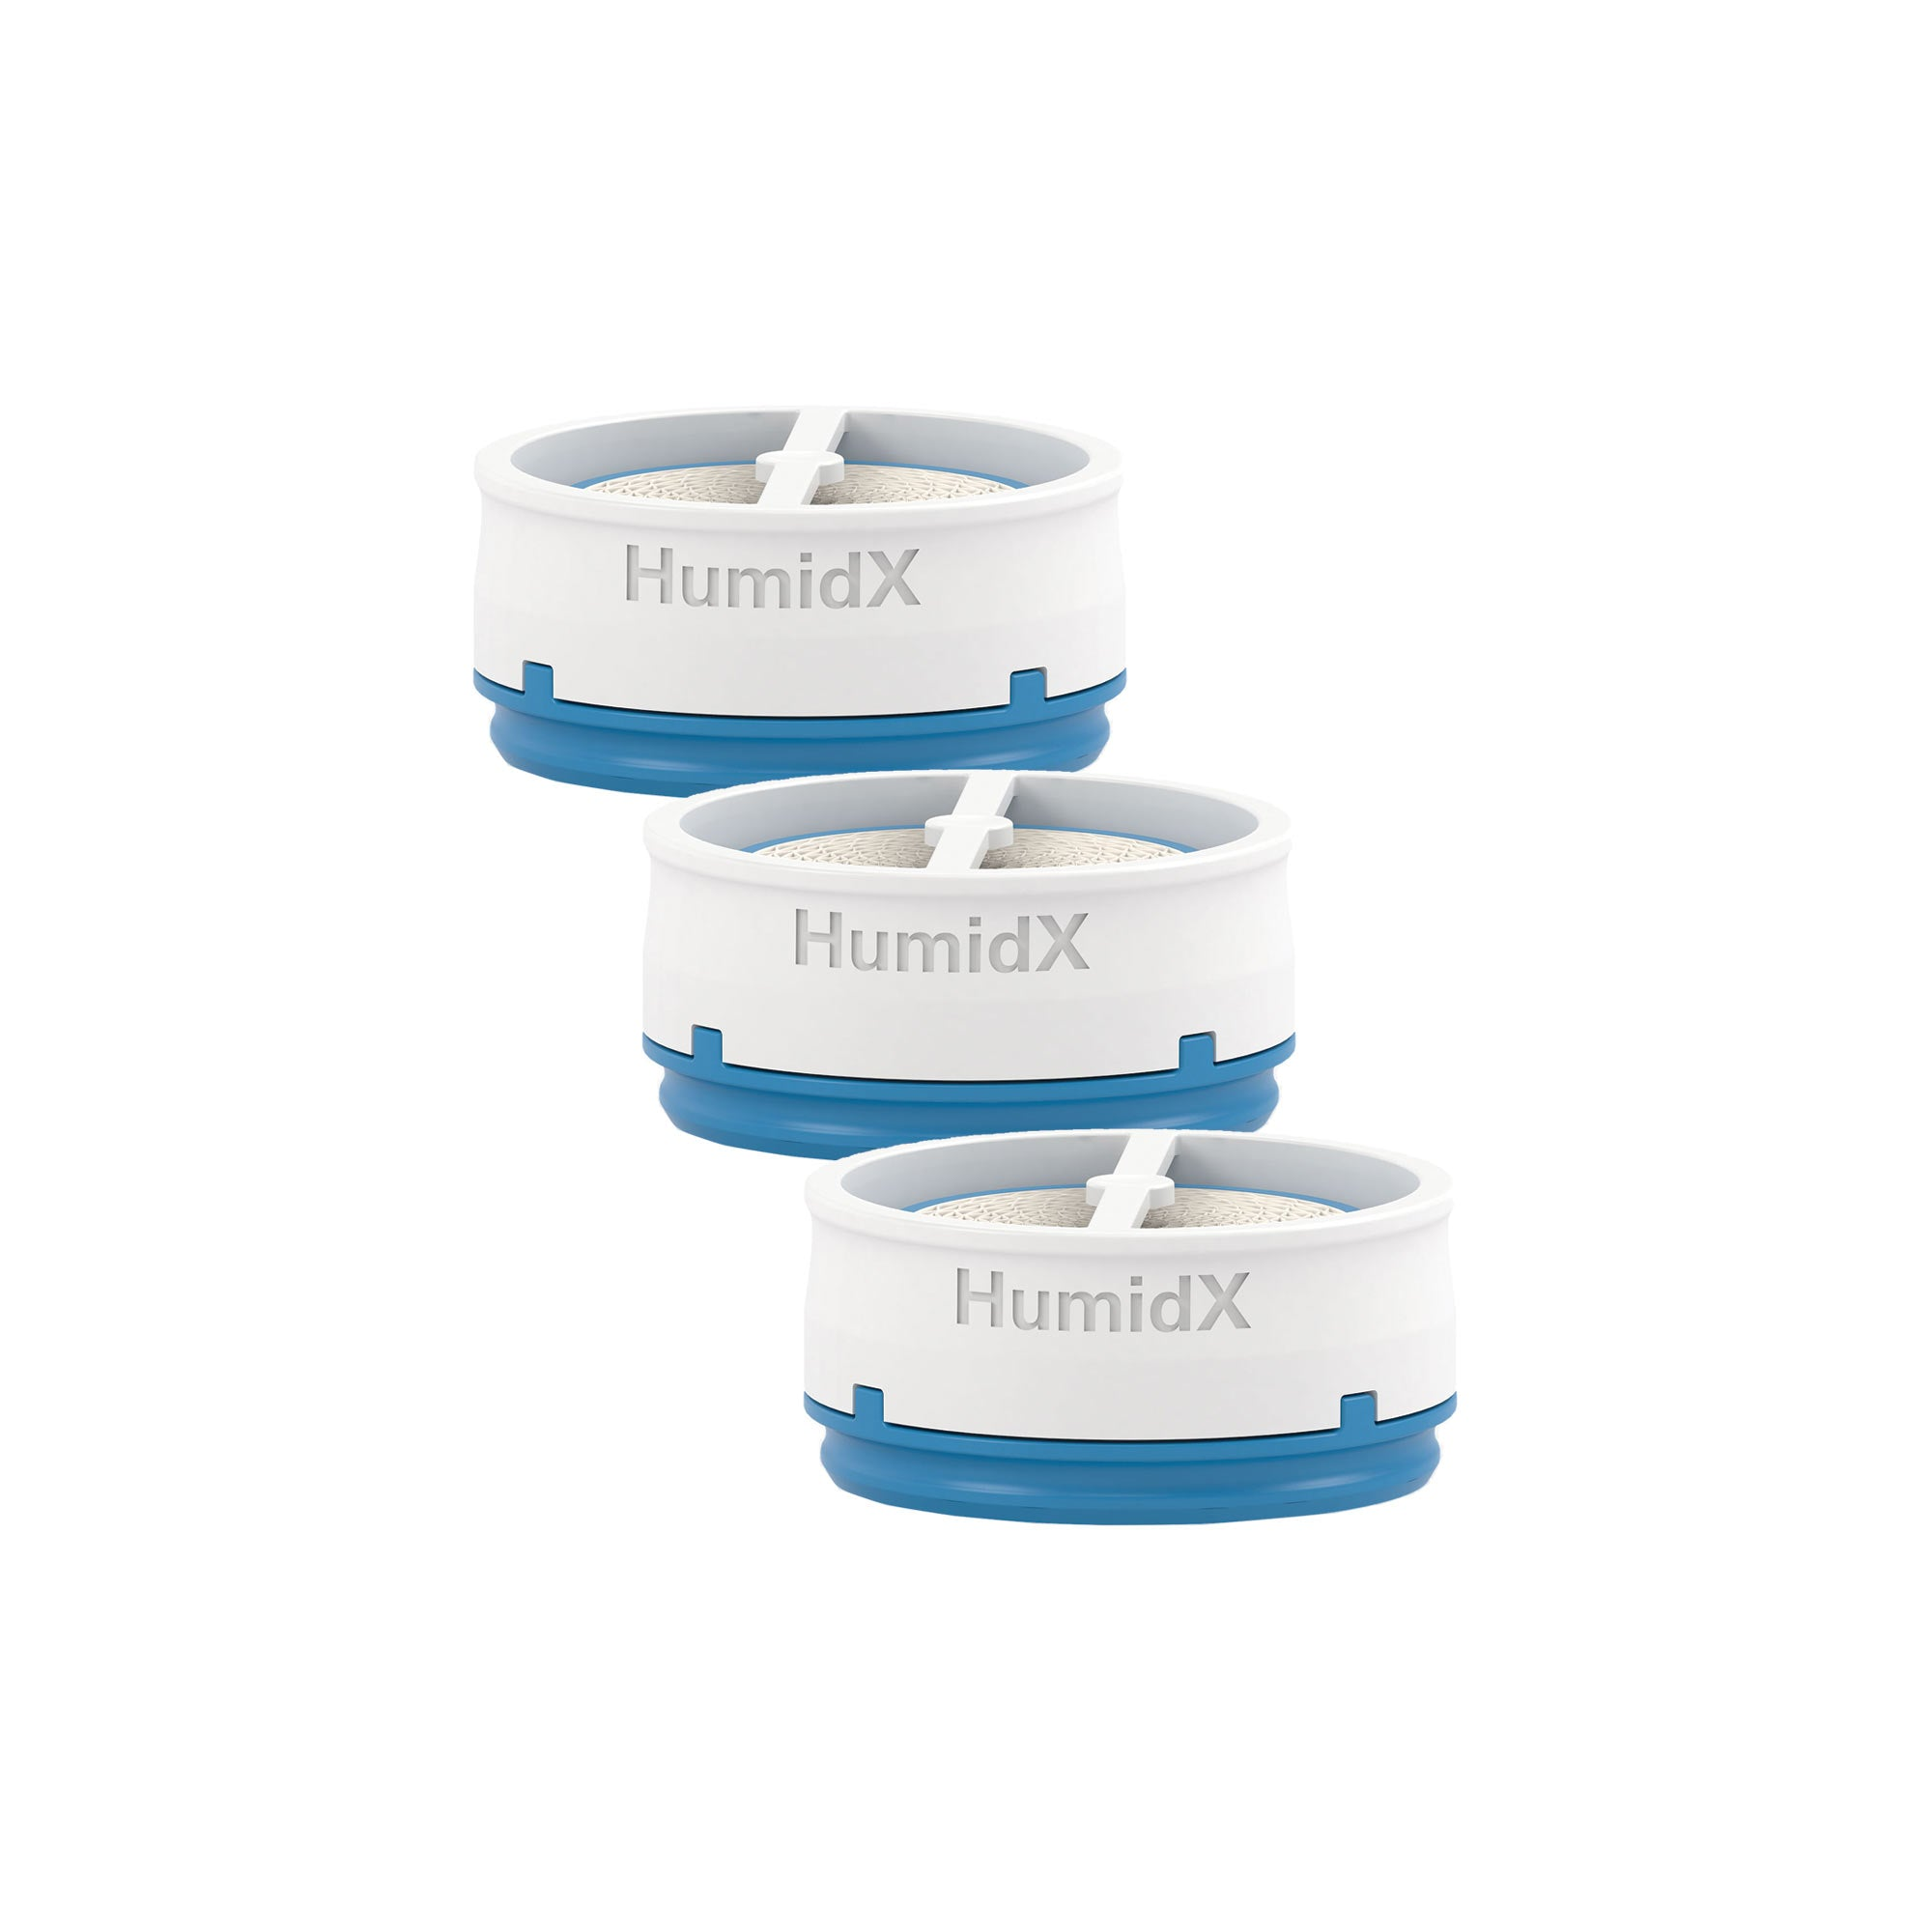 ResMed AirMini HumidX (3 pack)